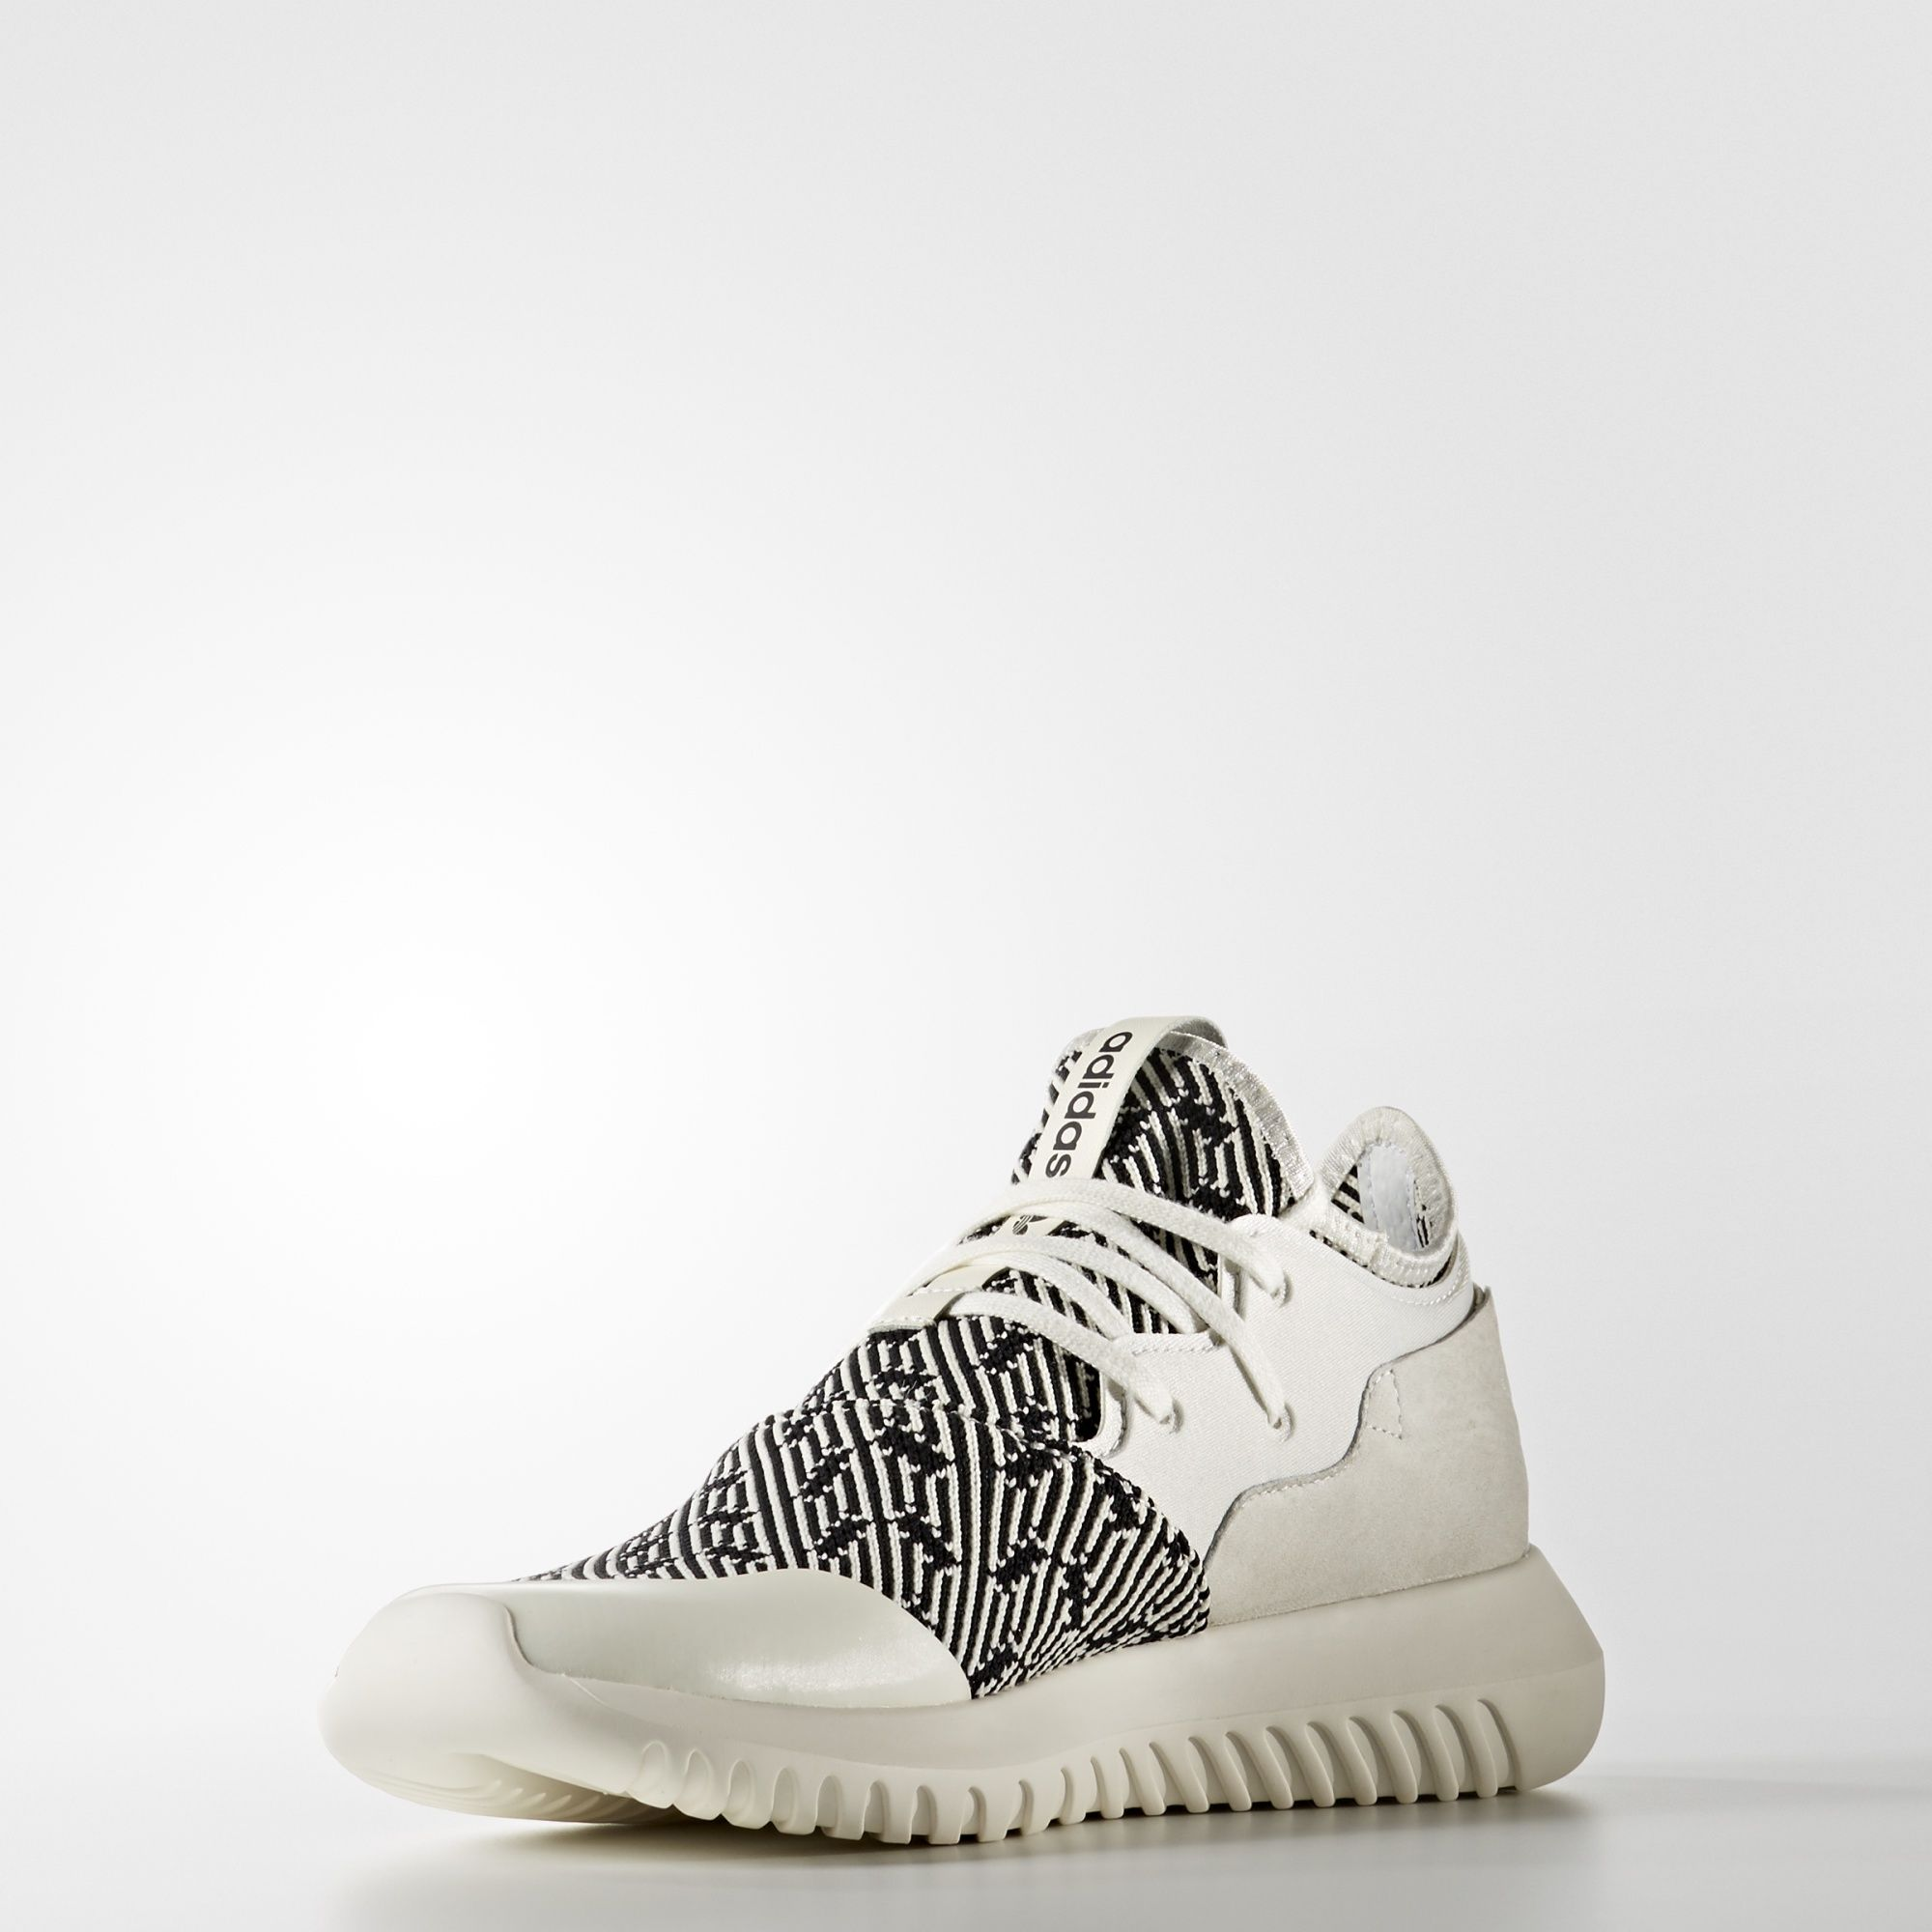 the women 39 s adidas originals tubular entrap primeknit is. Black Bedroom Furniture Sets. Home Design Ideas